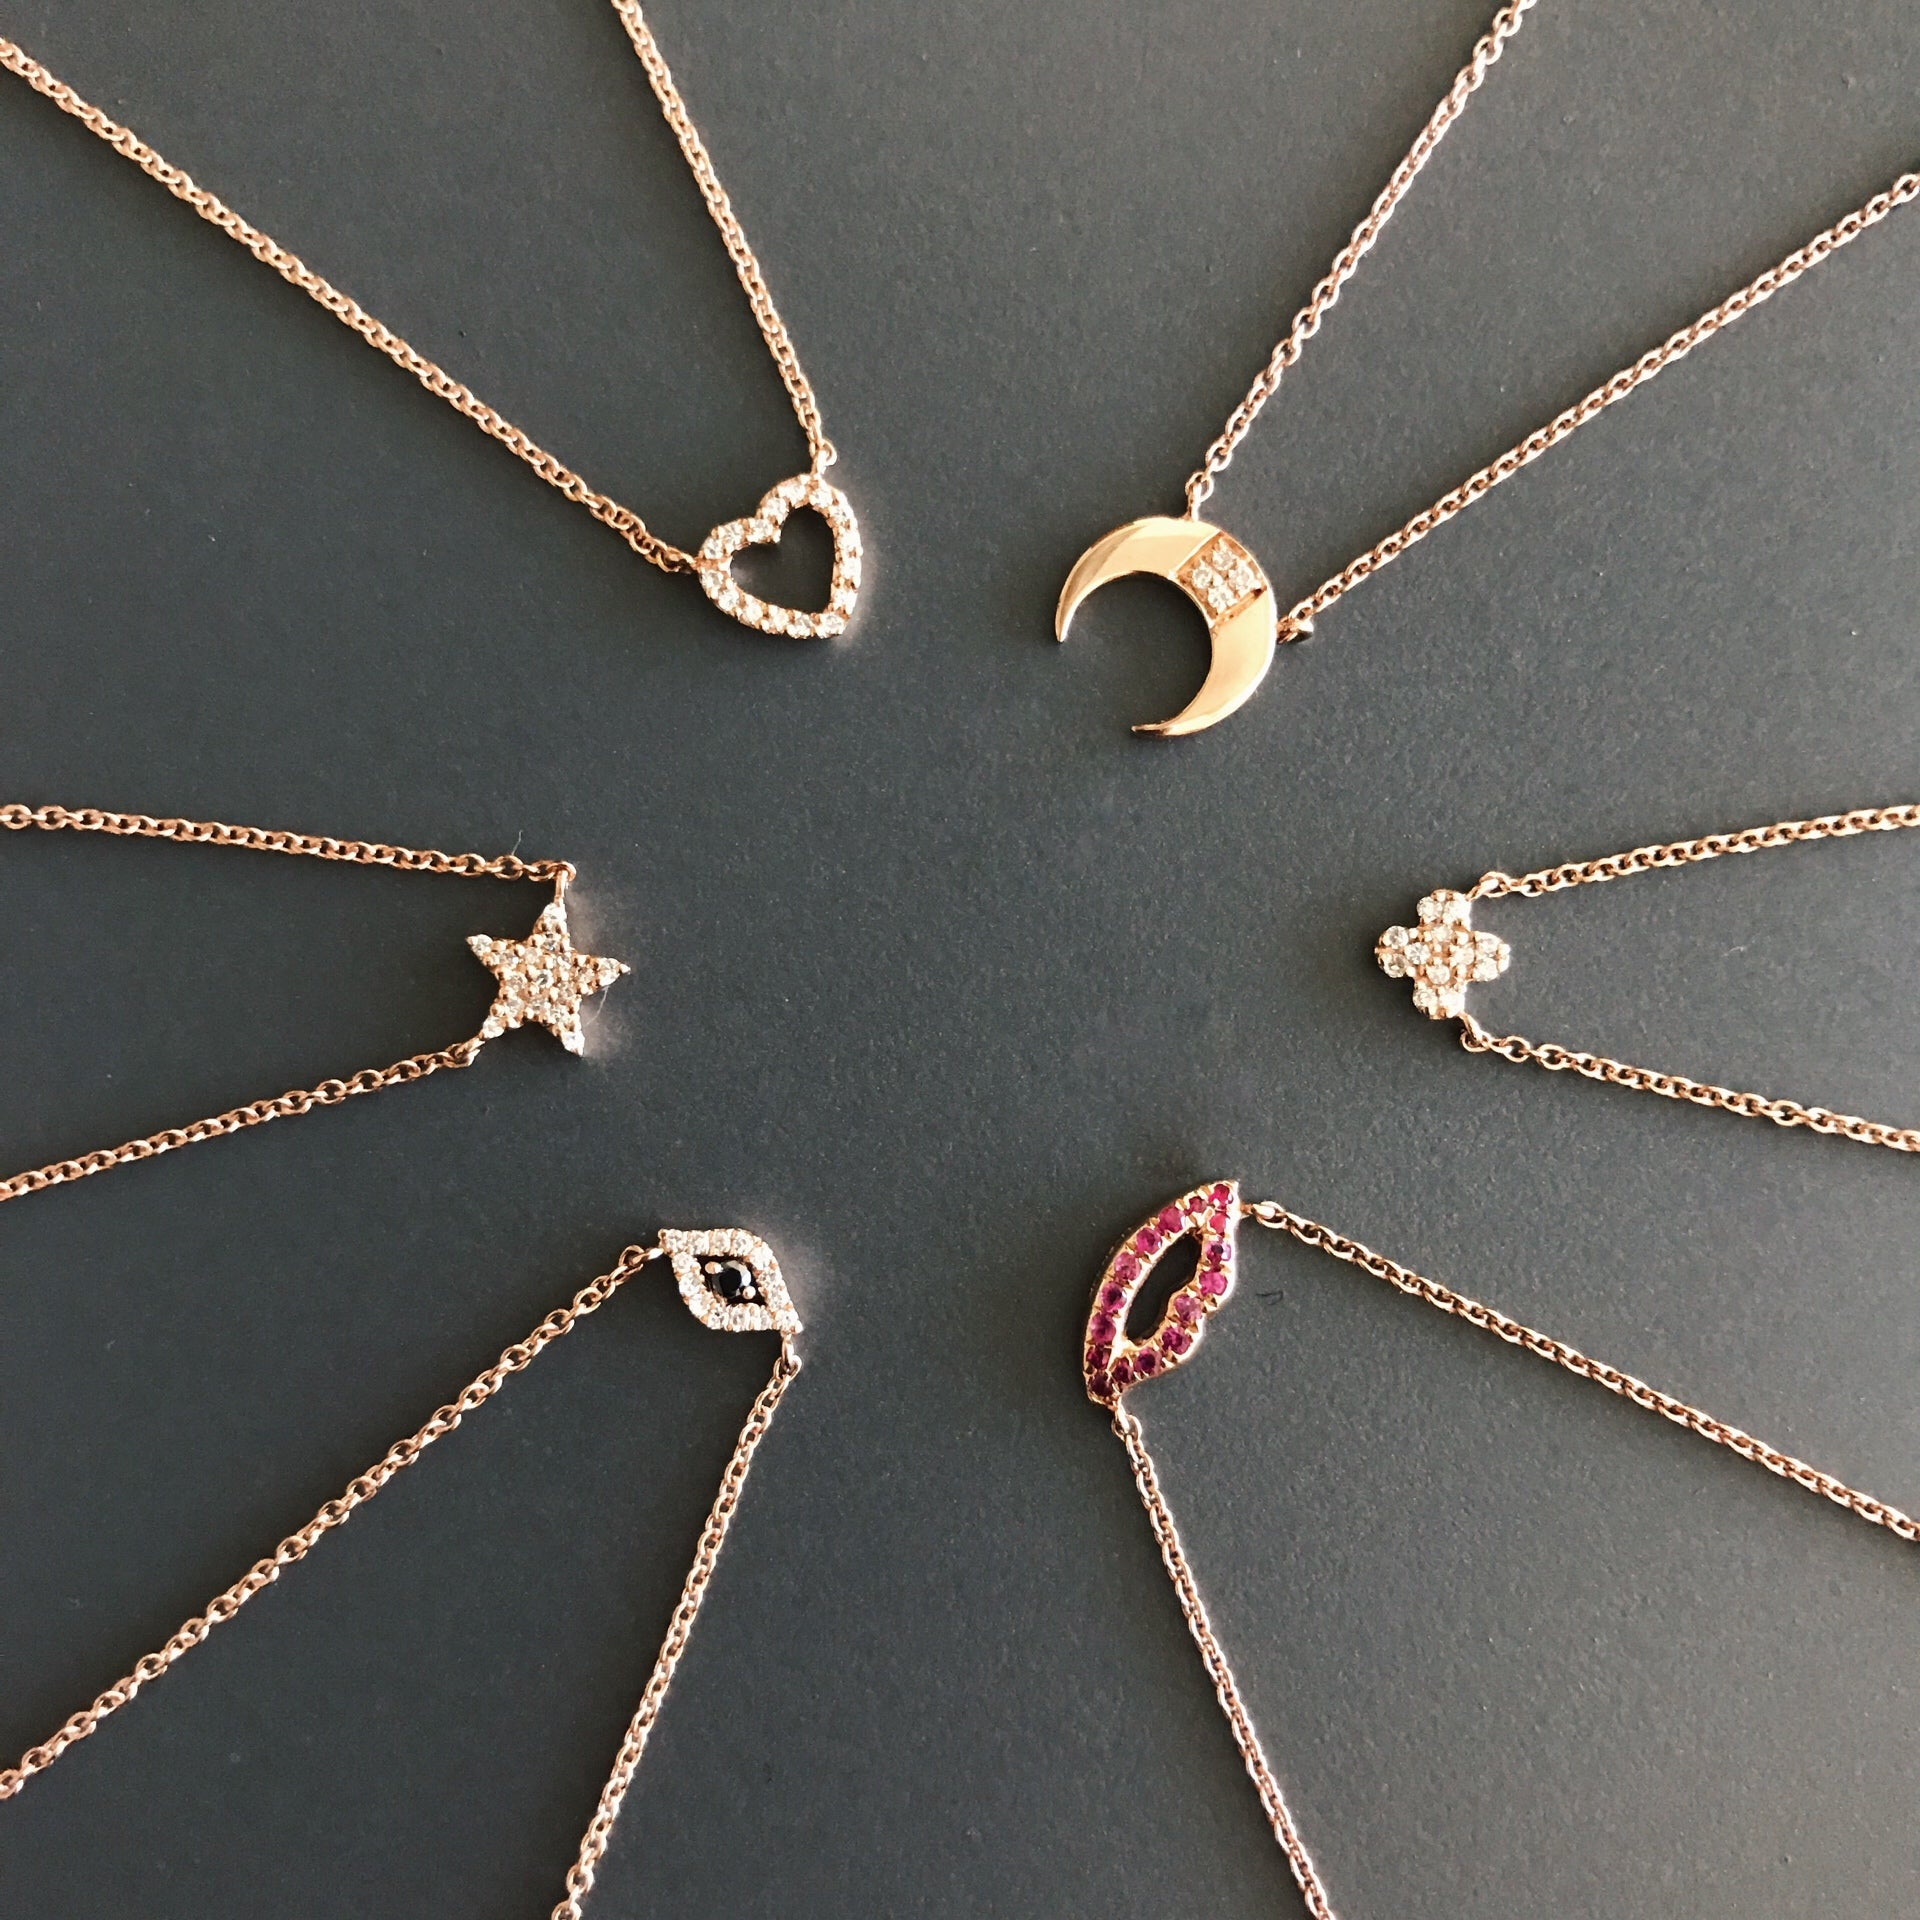 Necklaces with Pendants